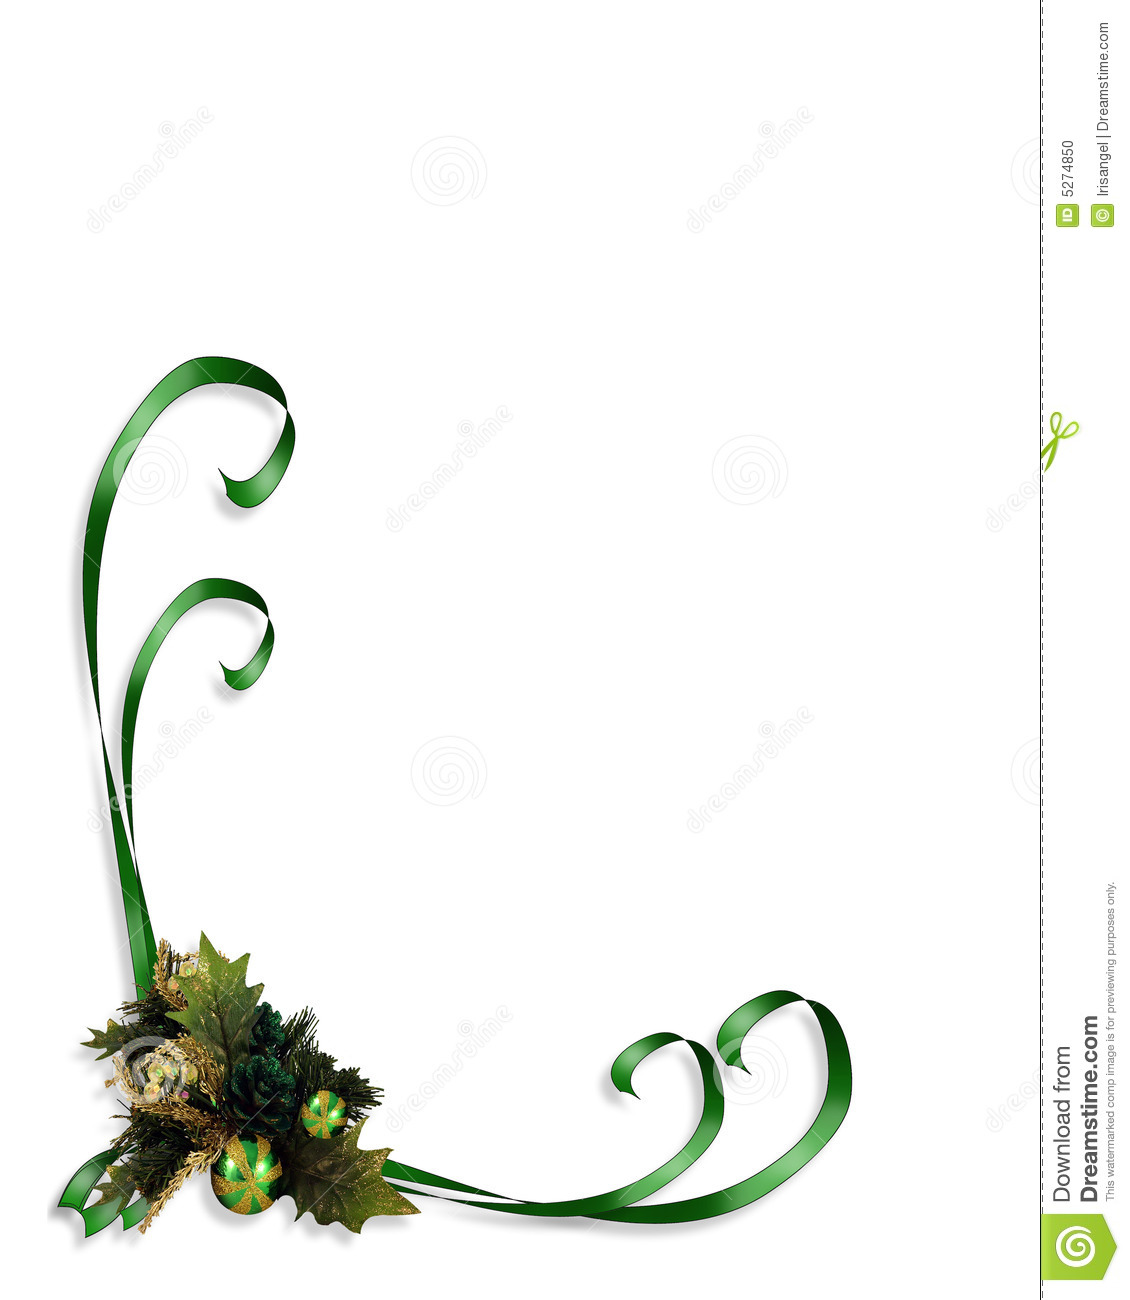 Christmas Border Corner Design Element Image And Illustration